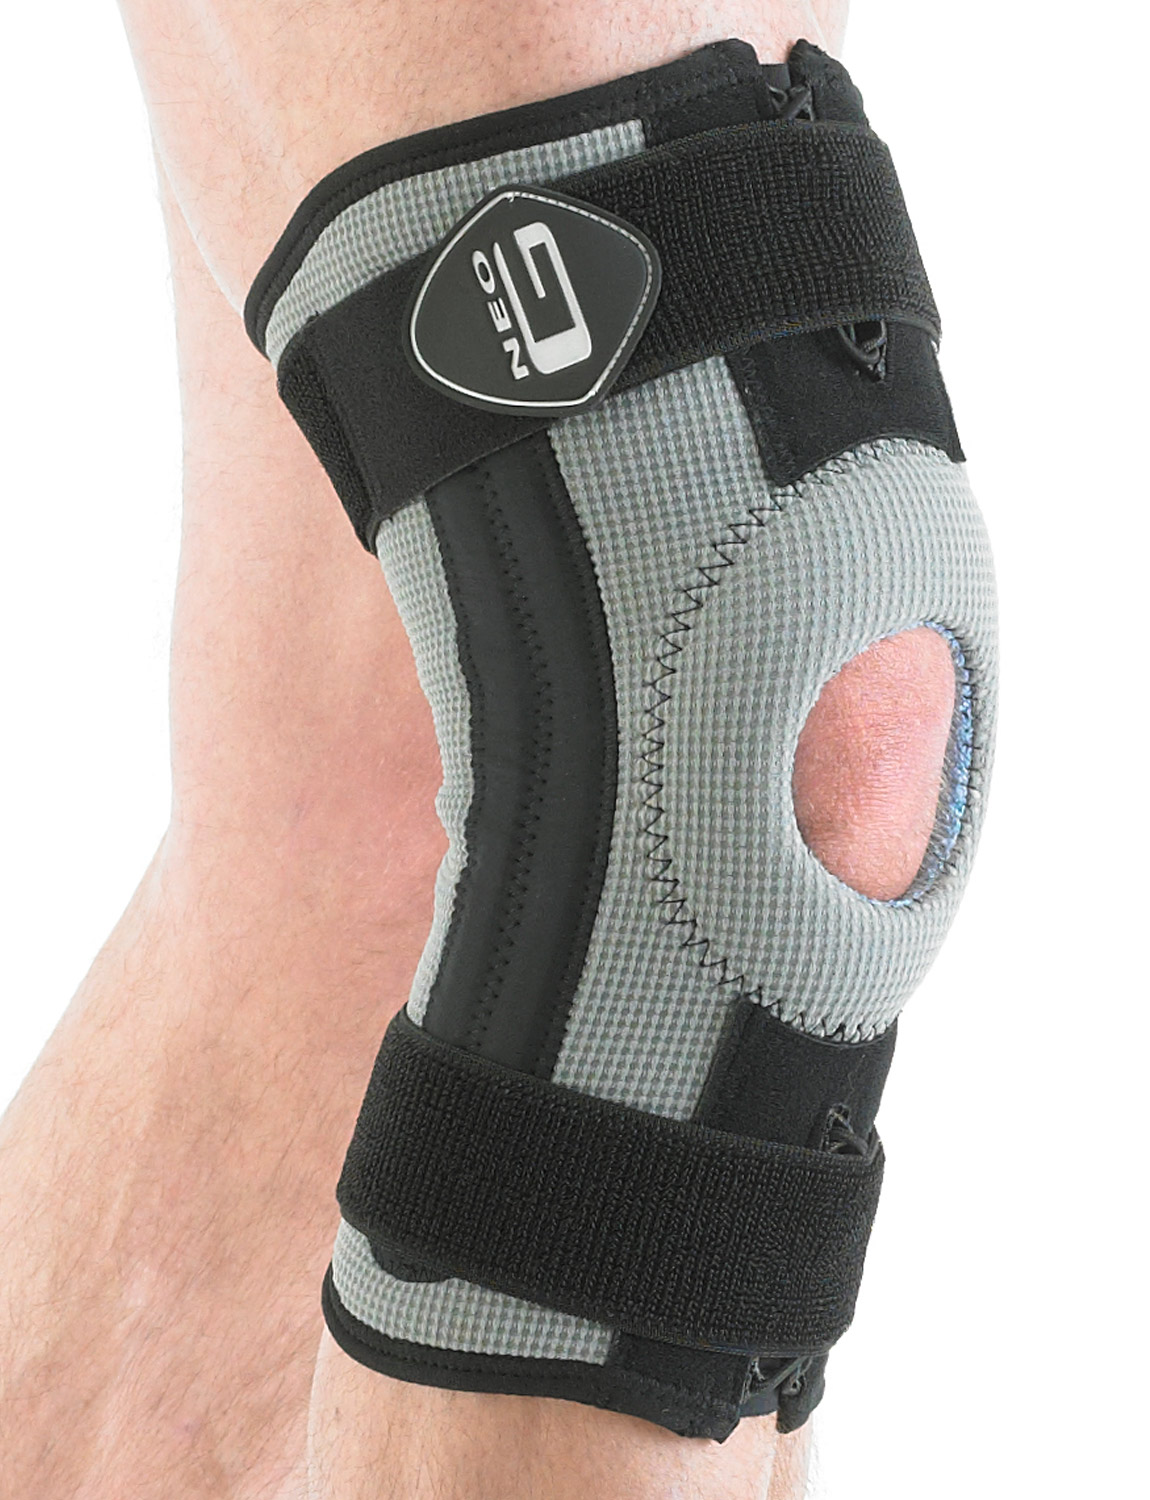 163 - STABILIZED KNEE SUPPORT   Designed to help with knee strains, sprains and instability and is useful for rehabilitation following knee trauma. For additional comfort and reassurance, the support features integrated flexible stays and a premium quality patella silicone insert to dampen vibrations located directly under the kneecap.